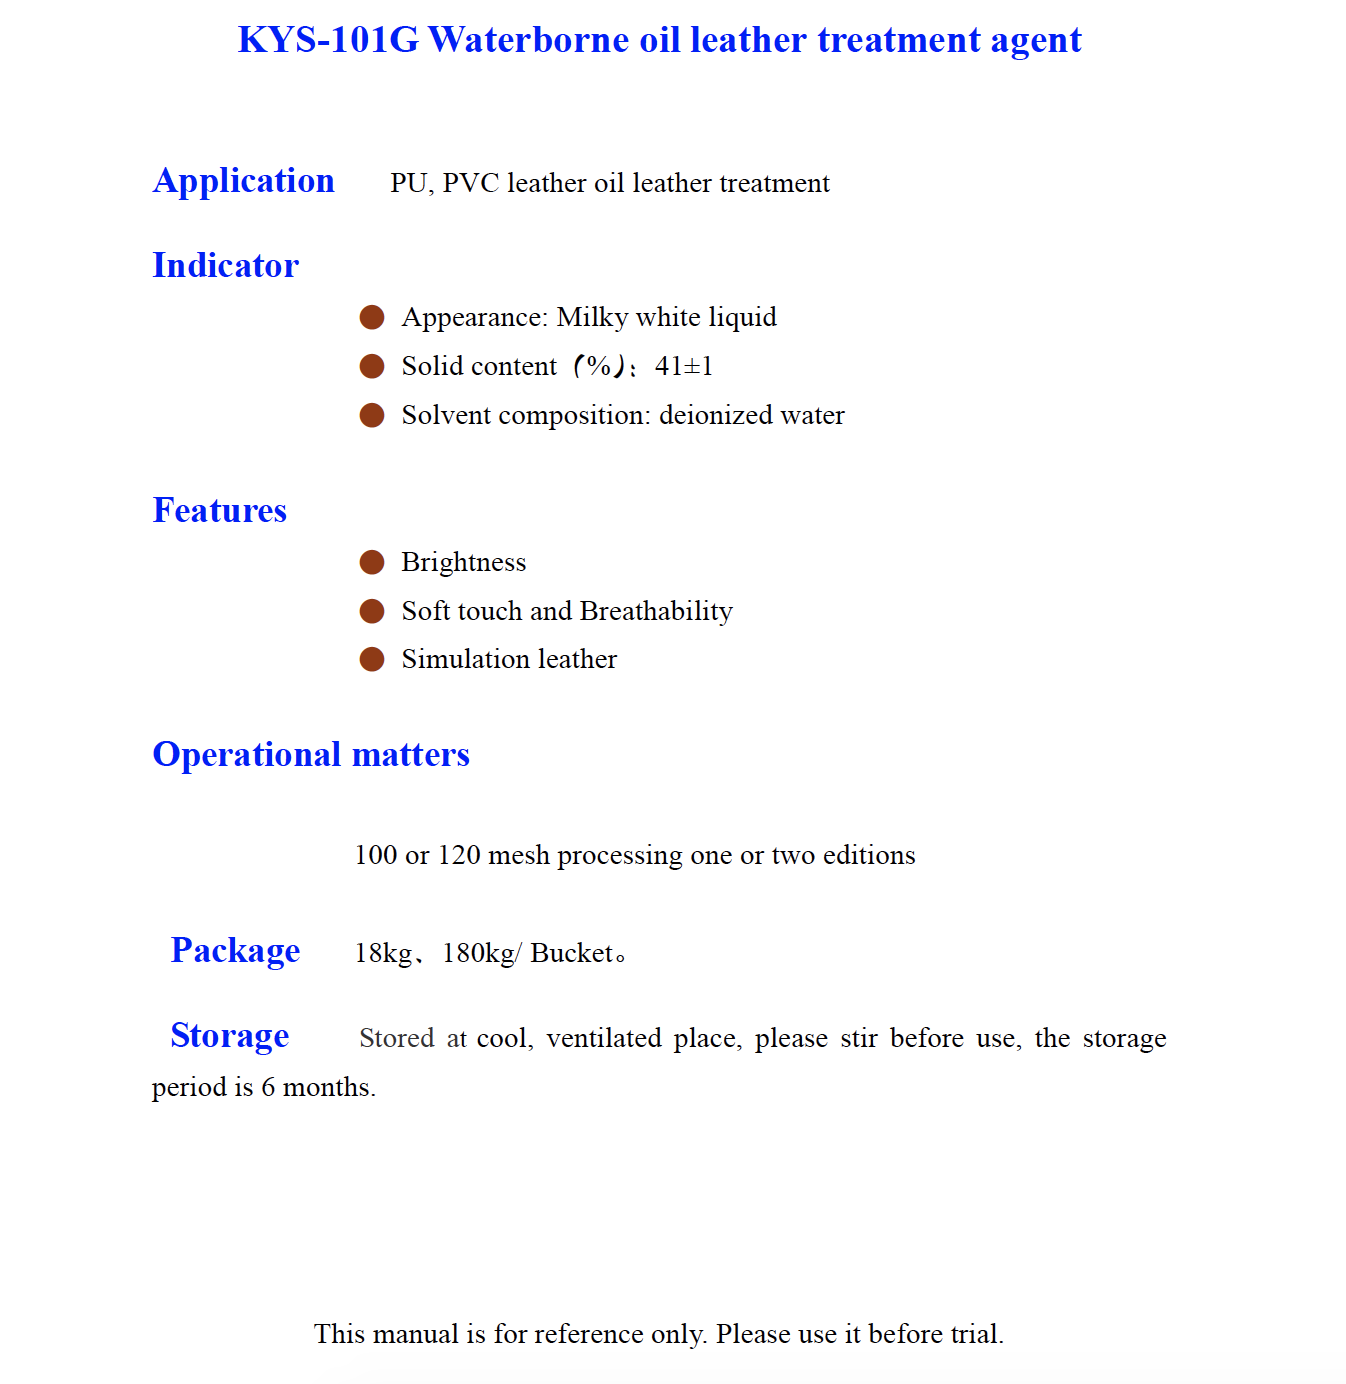 K YS 101G Waterborne oil leather treatment agent